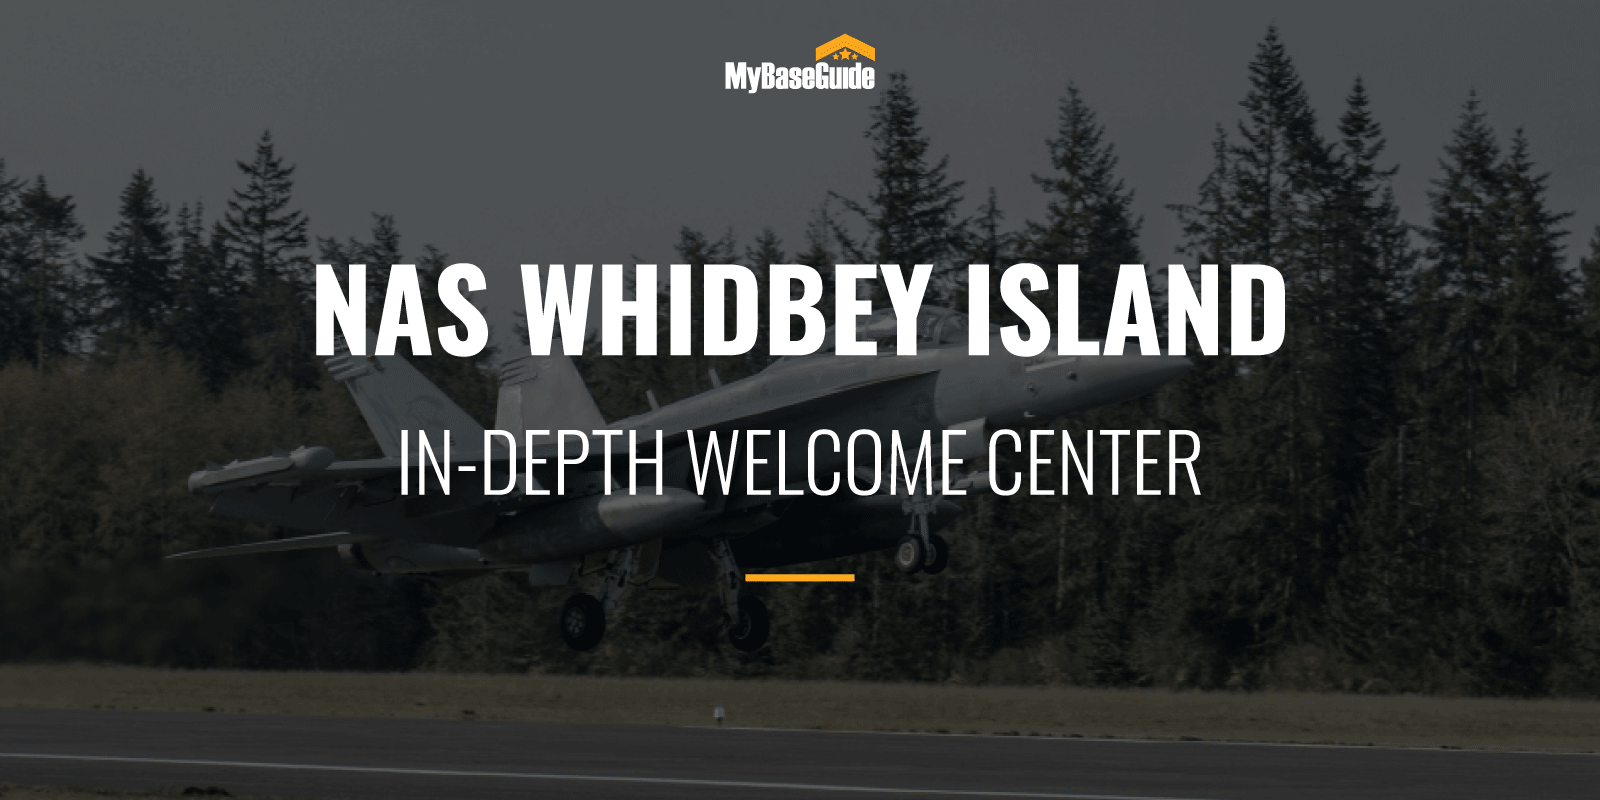 NAS Whidbey Island Welcome Center